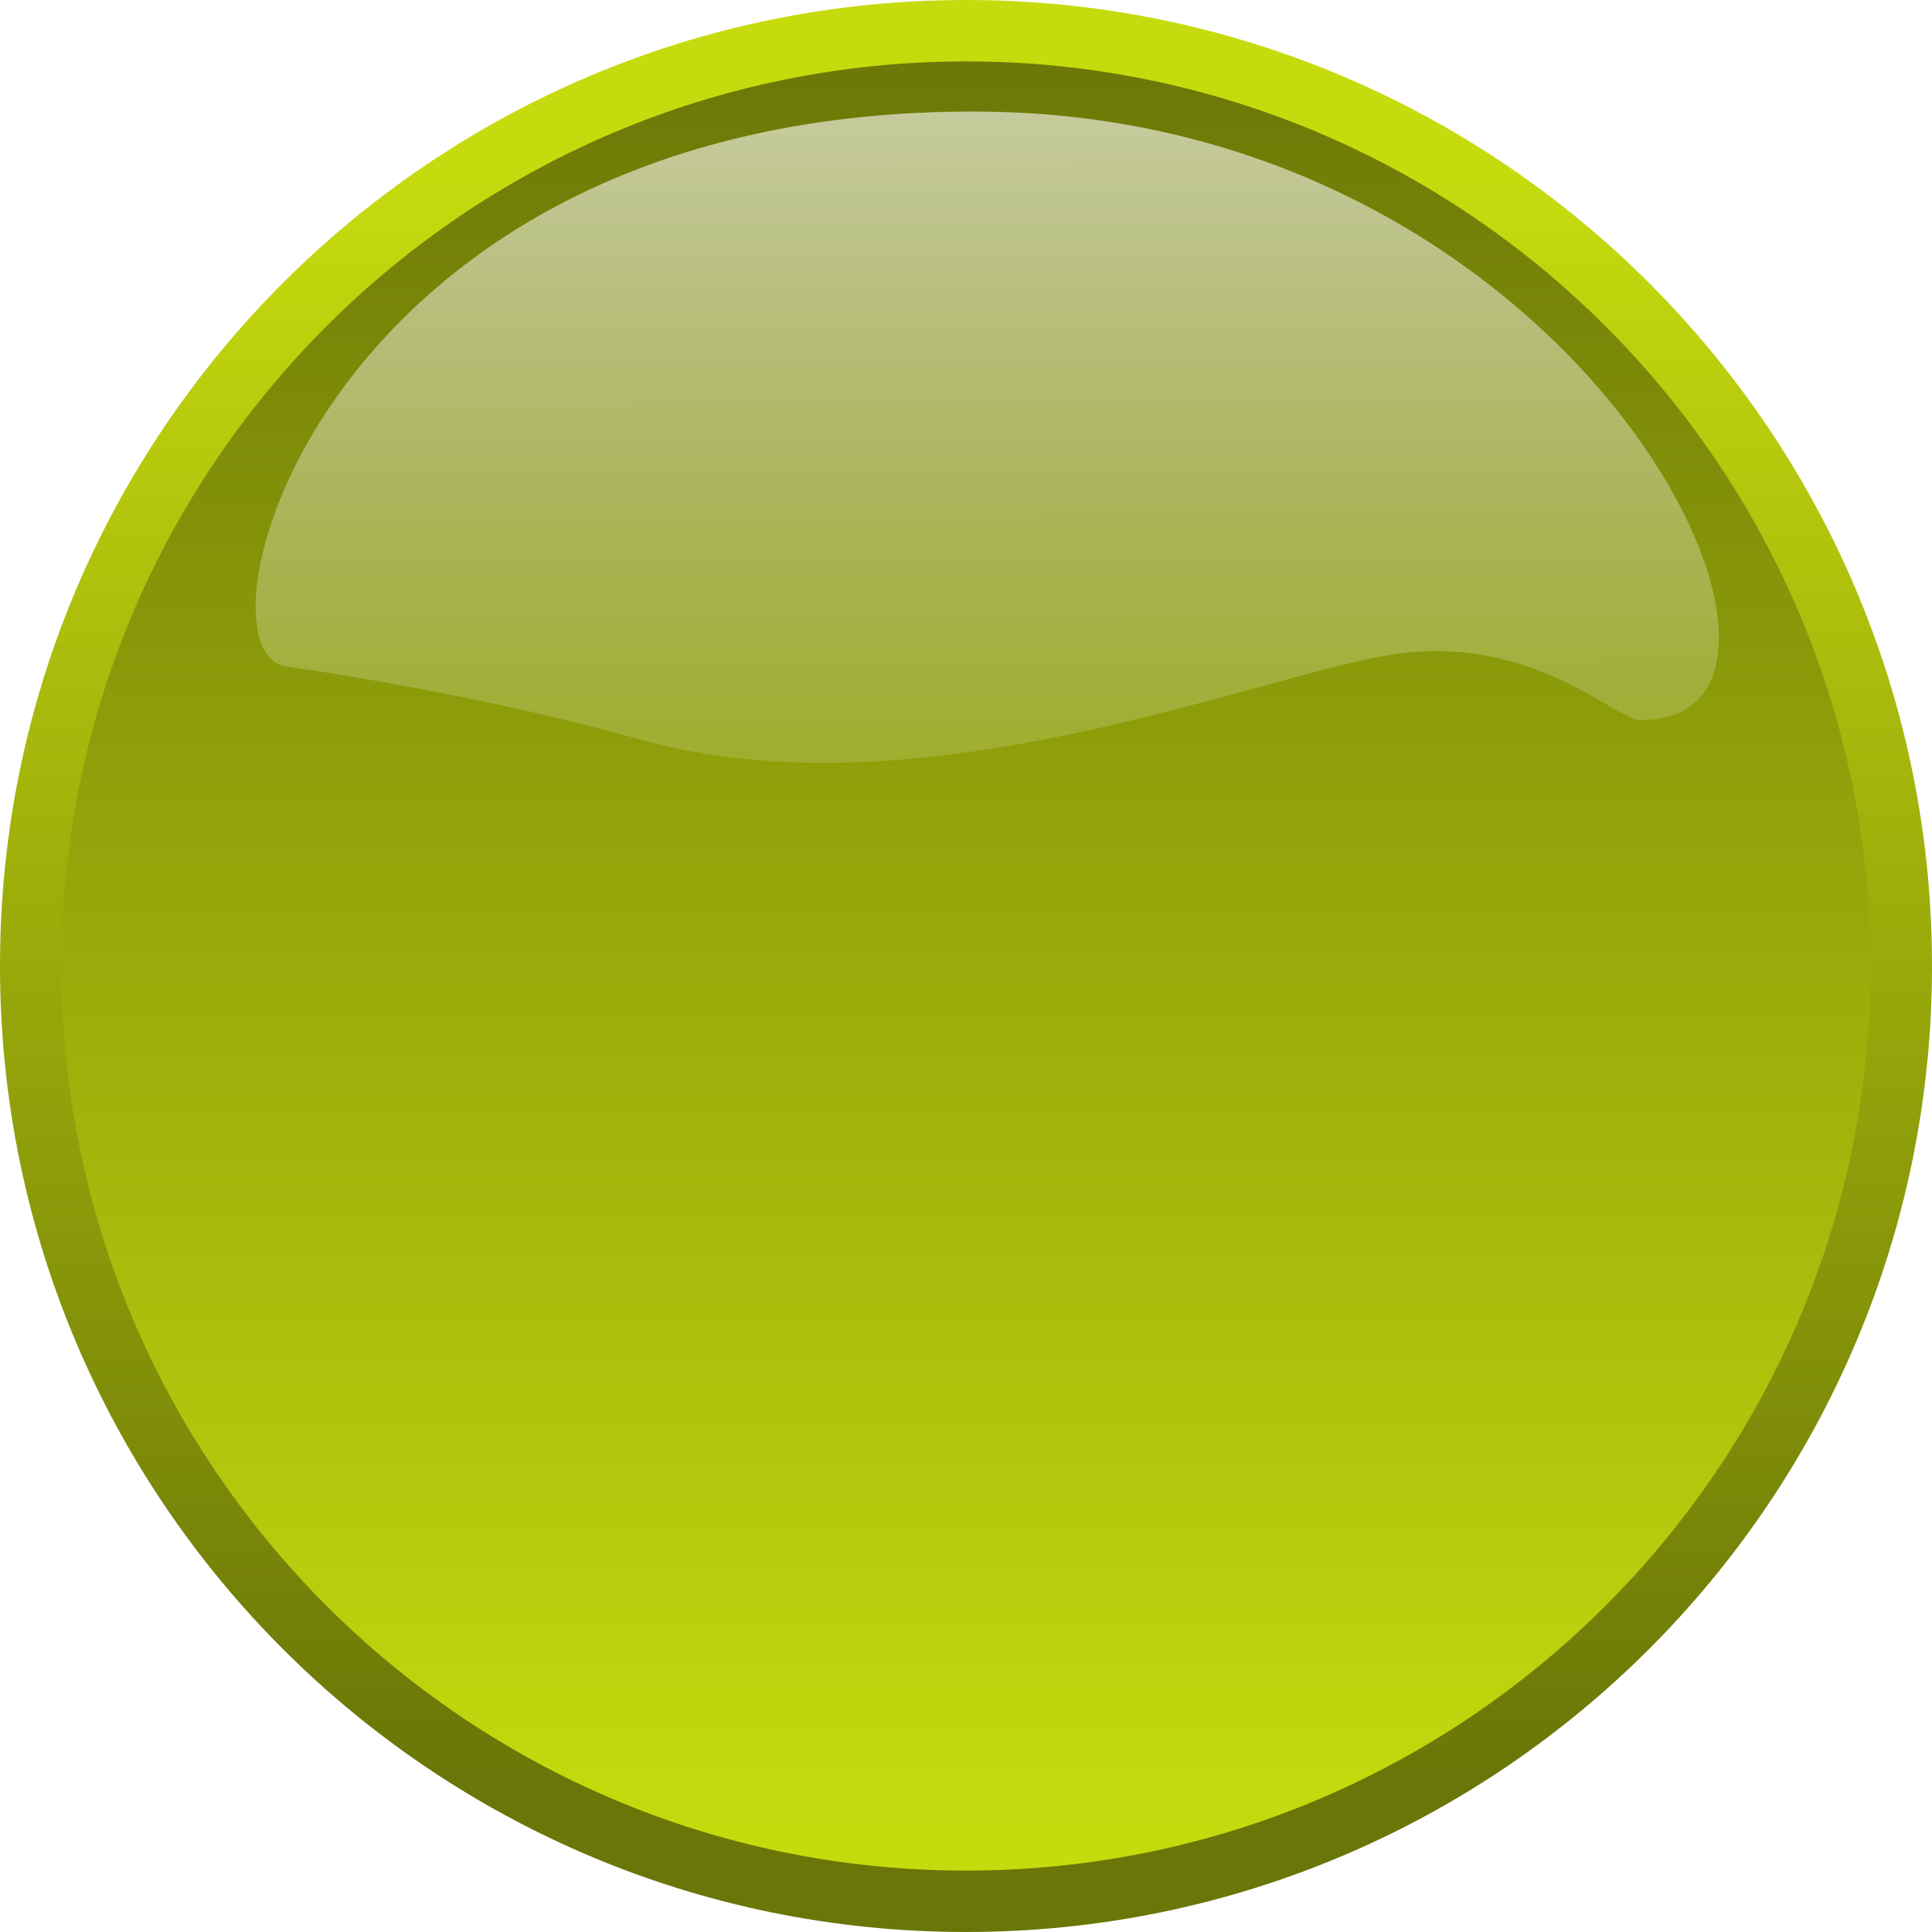 Big image png. Button clipart yellow button